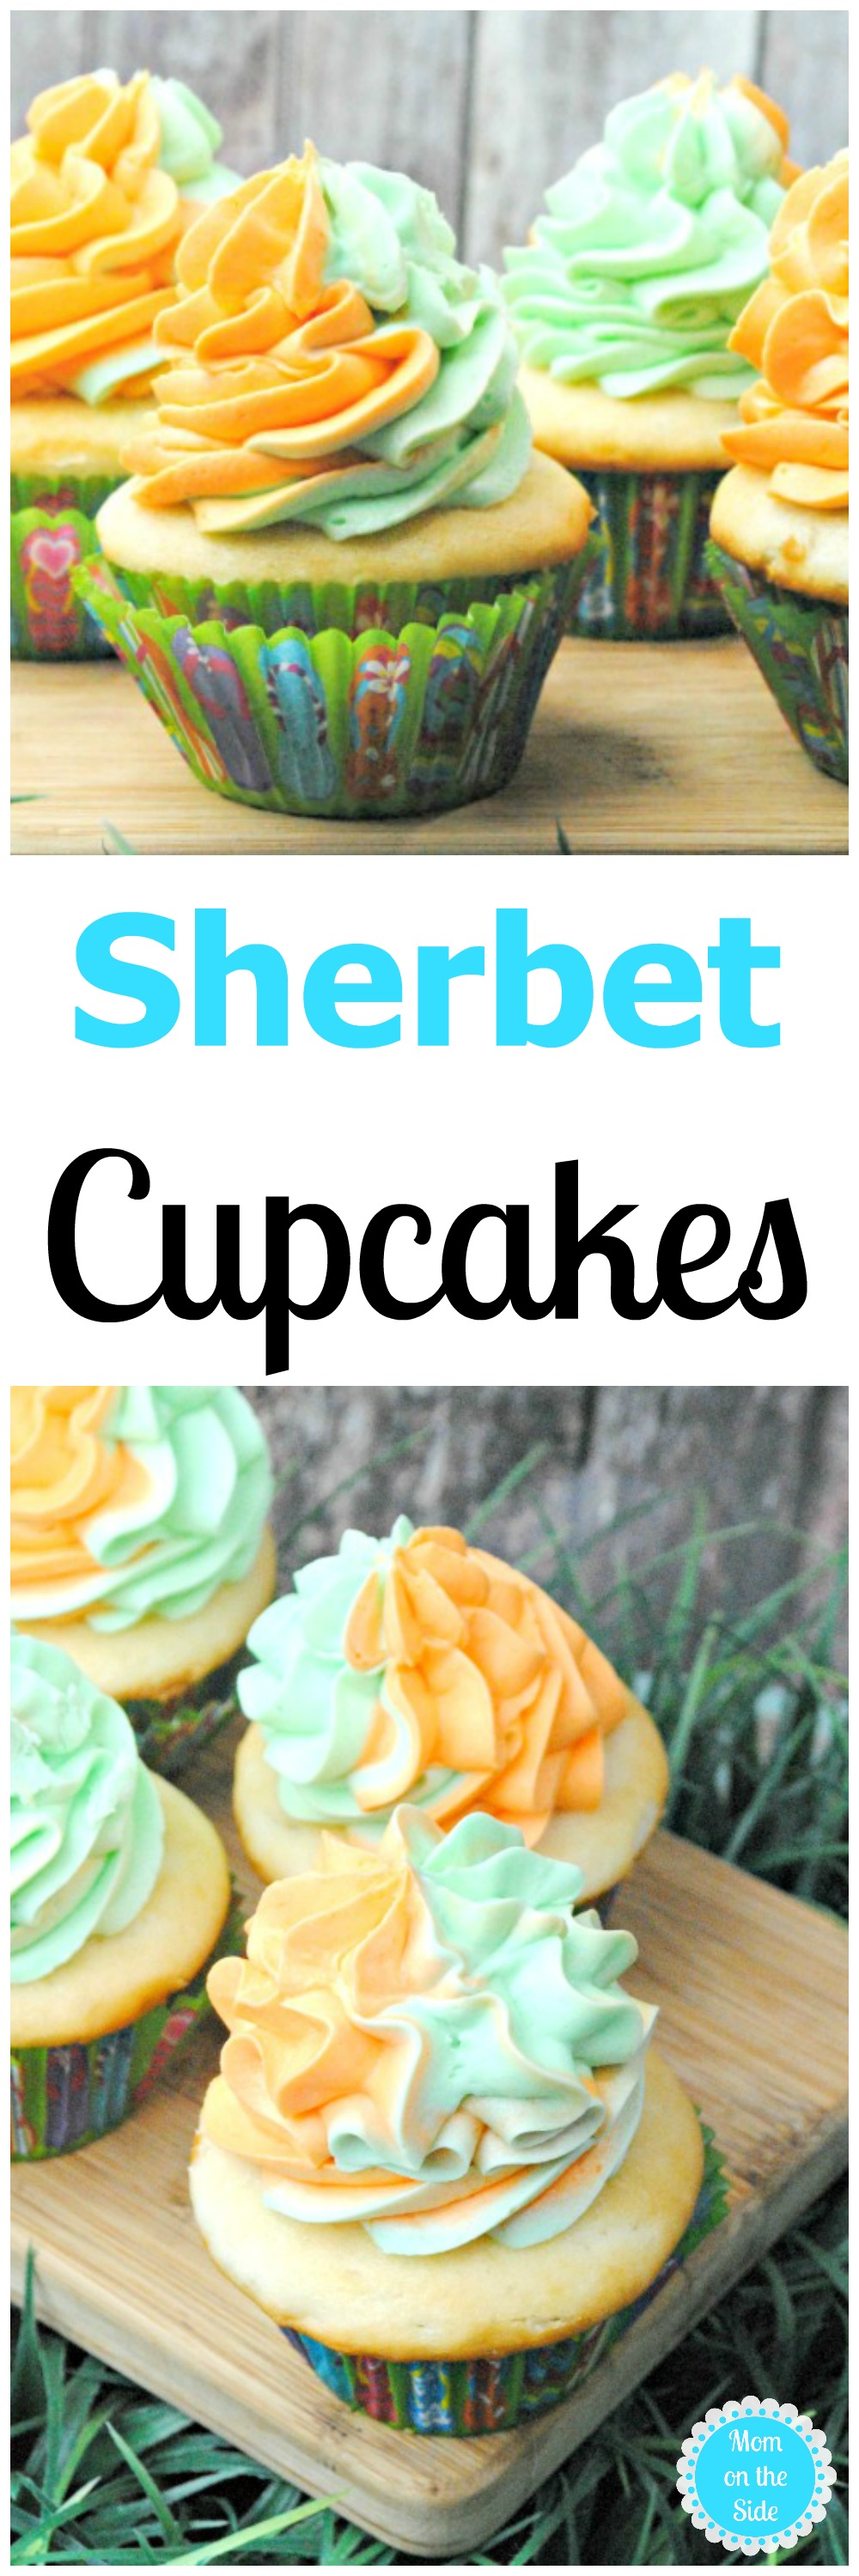 Grab this Sherbet Cupcakes recipe on Mom on the Side, and whip them up for your family, or hide them and keep them all to yourself!